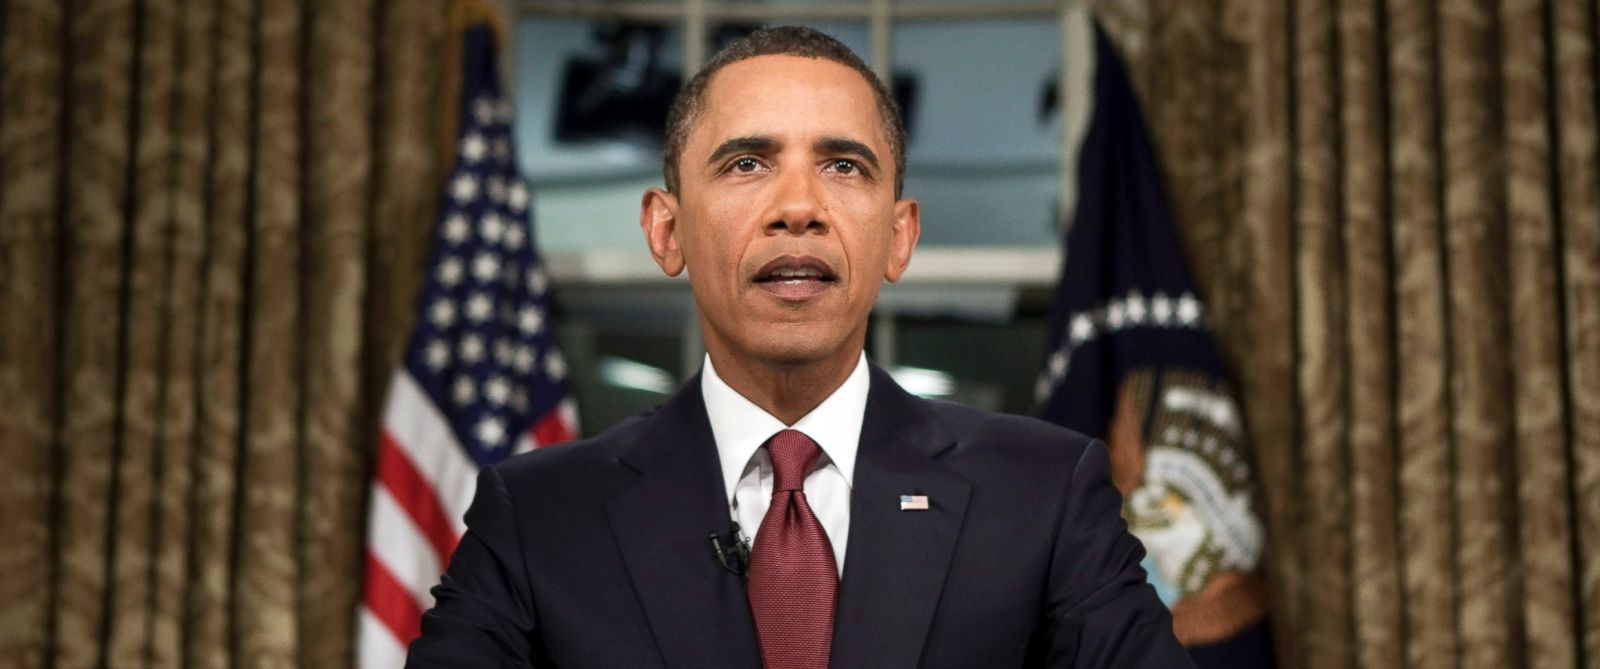 PHOTO: President Barack Obama speaks during a televised national address in the Oval Office at the White House in Washington, Tuesday, Aug. 31, 2010.